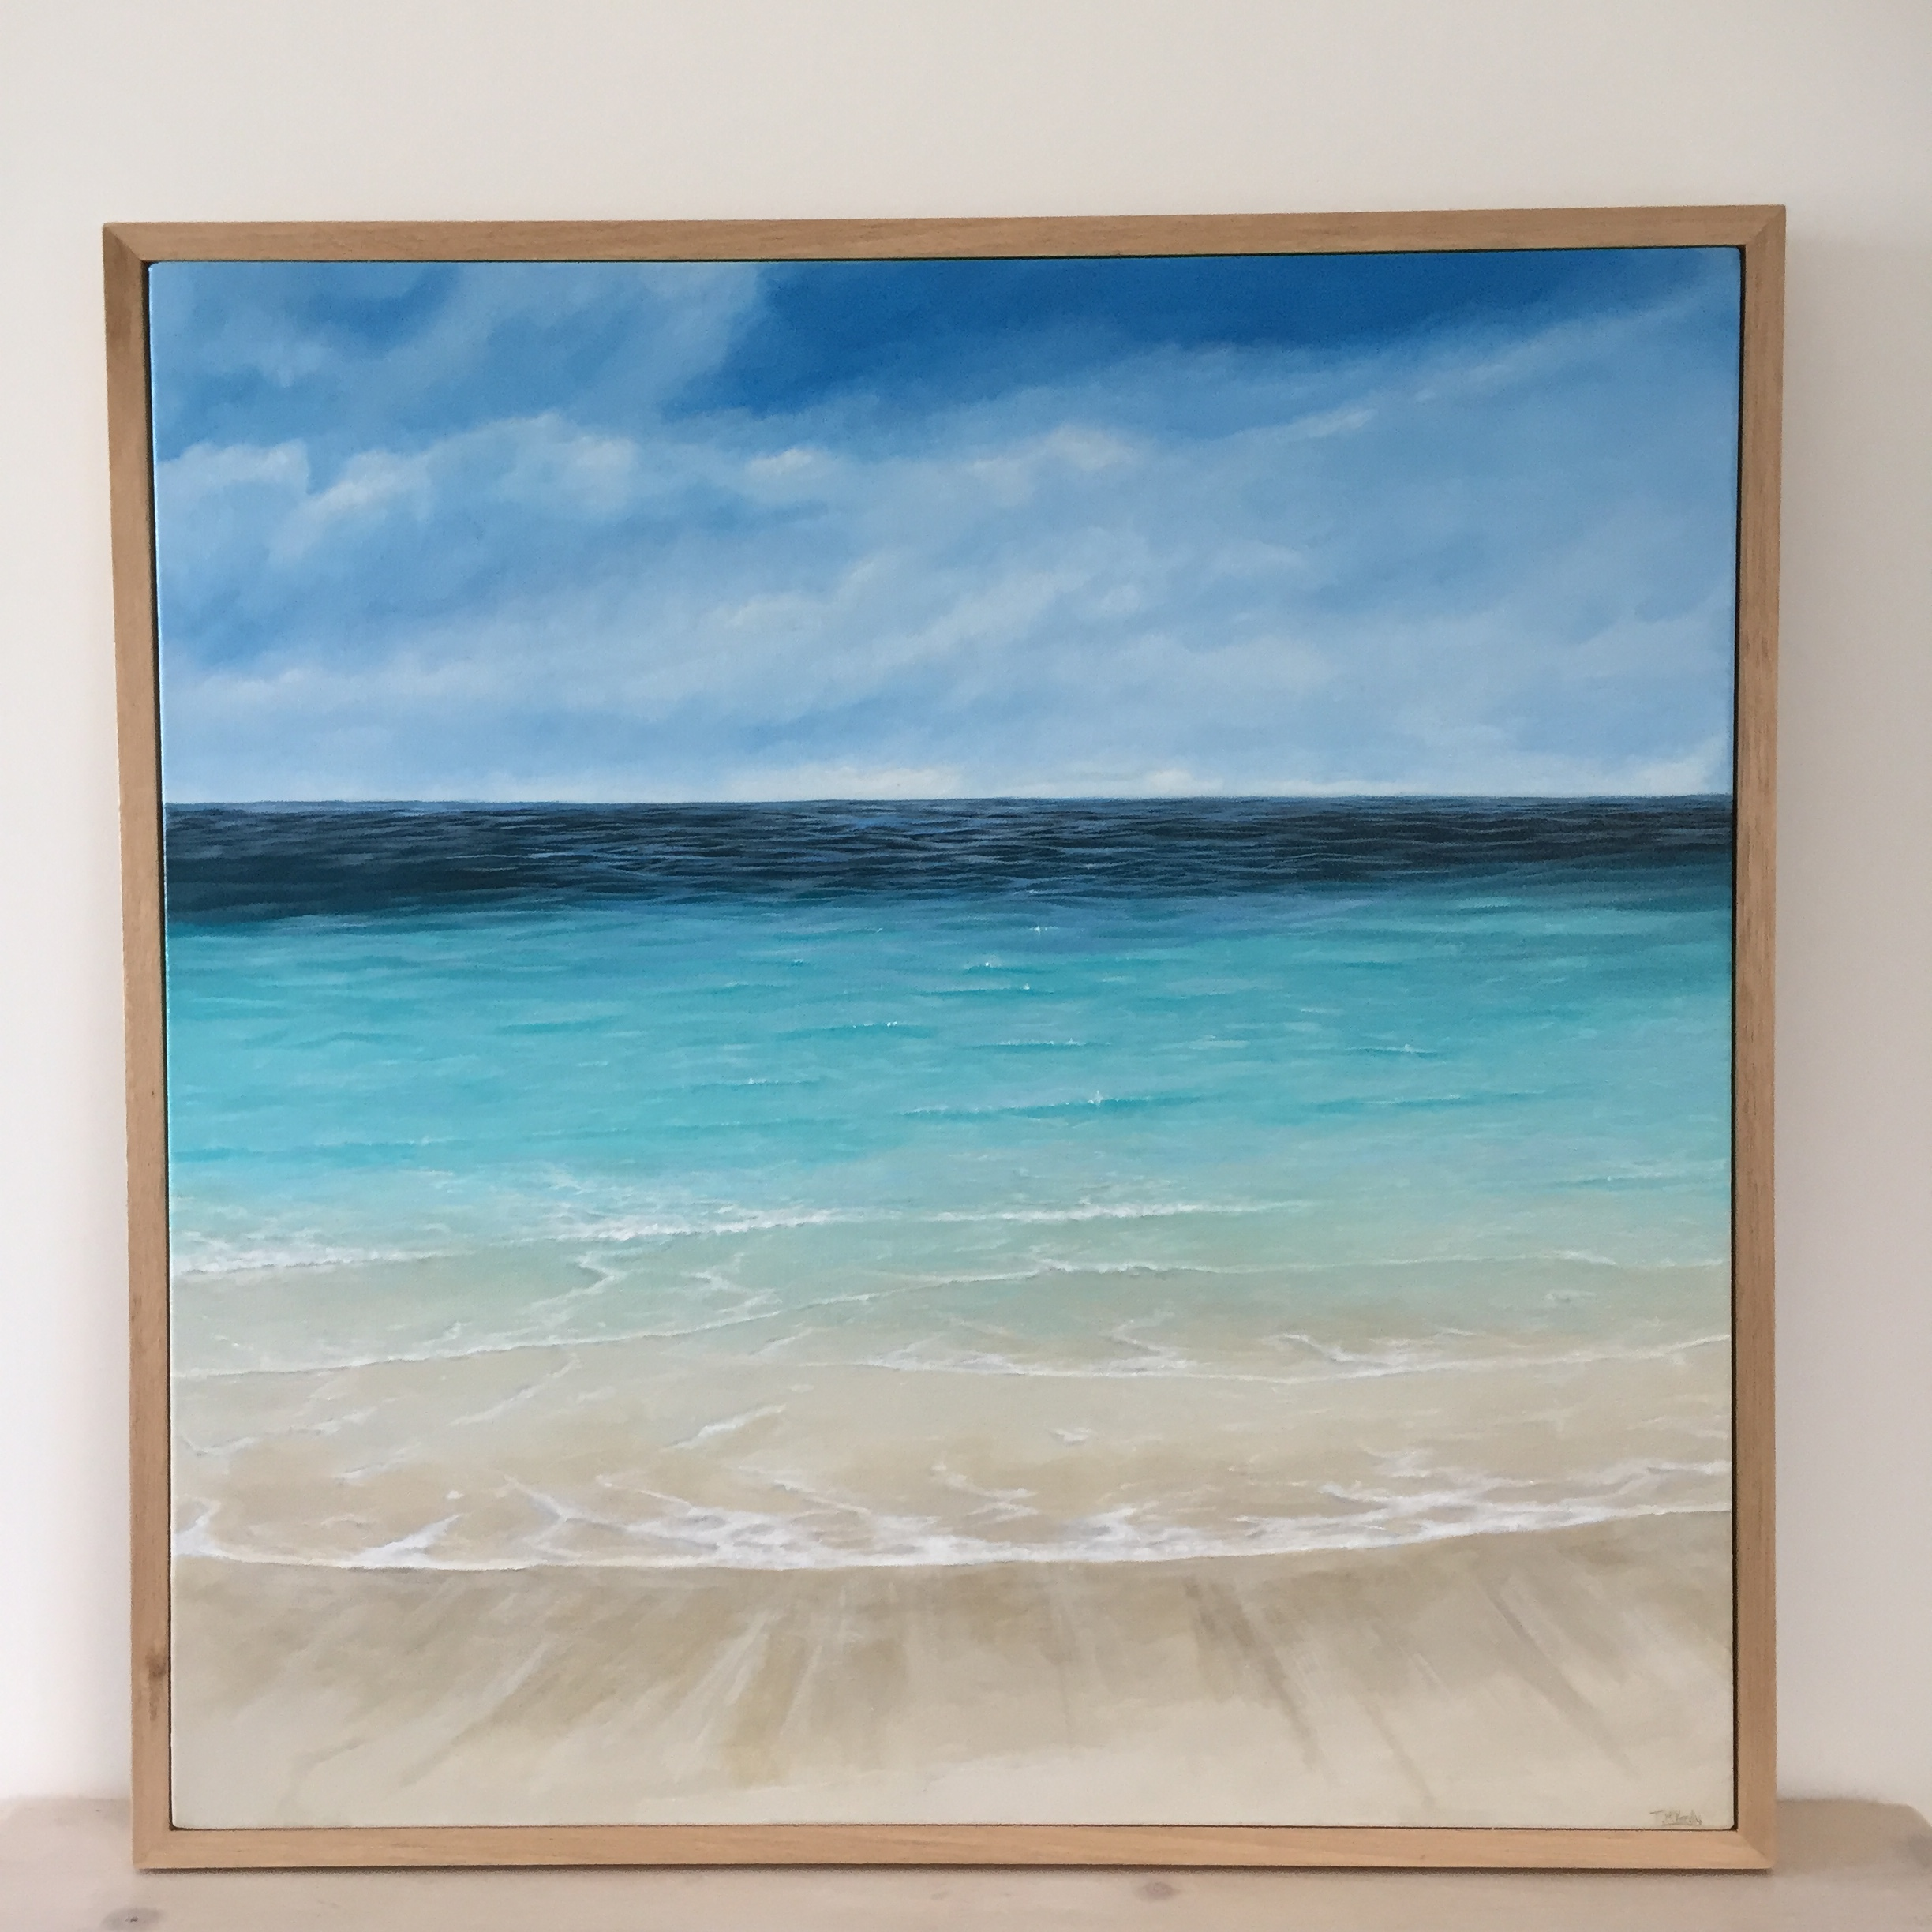 Calm - $750Acrylic on gallery wrapped canvas. Now framed in Australian oak.760 x 760mm.